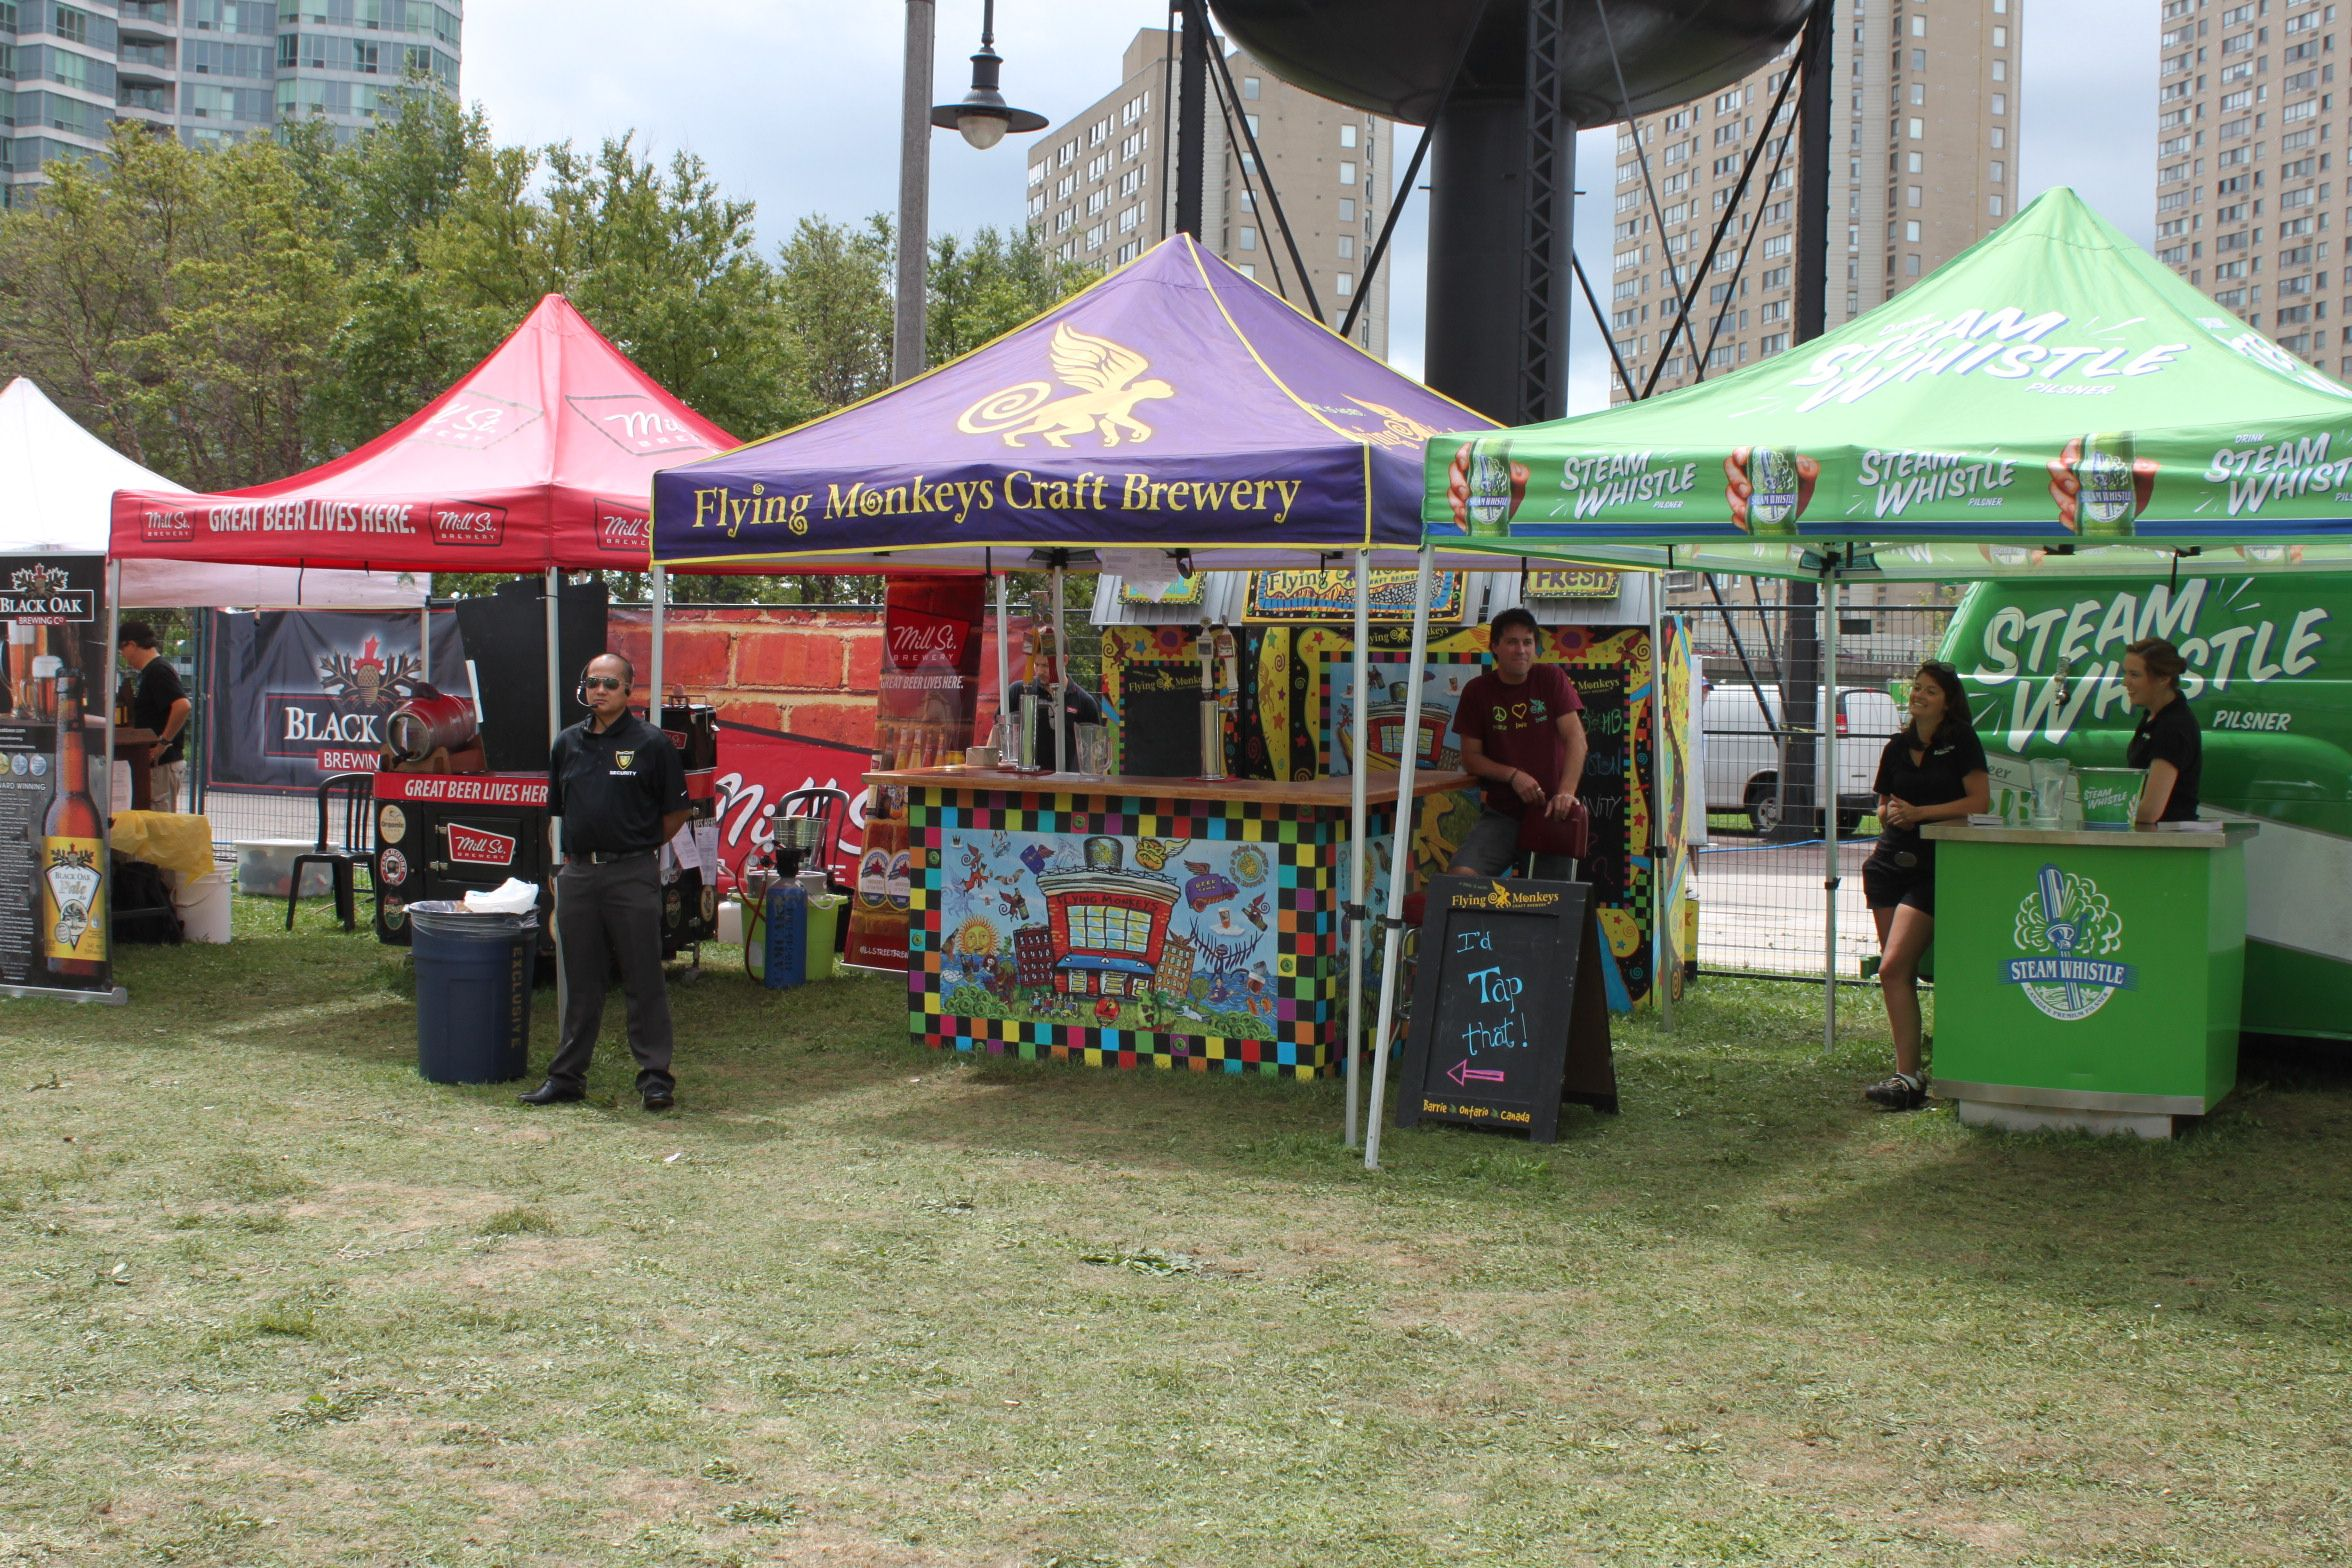 Branded Tents mixed in with food carts